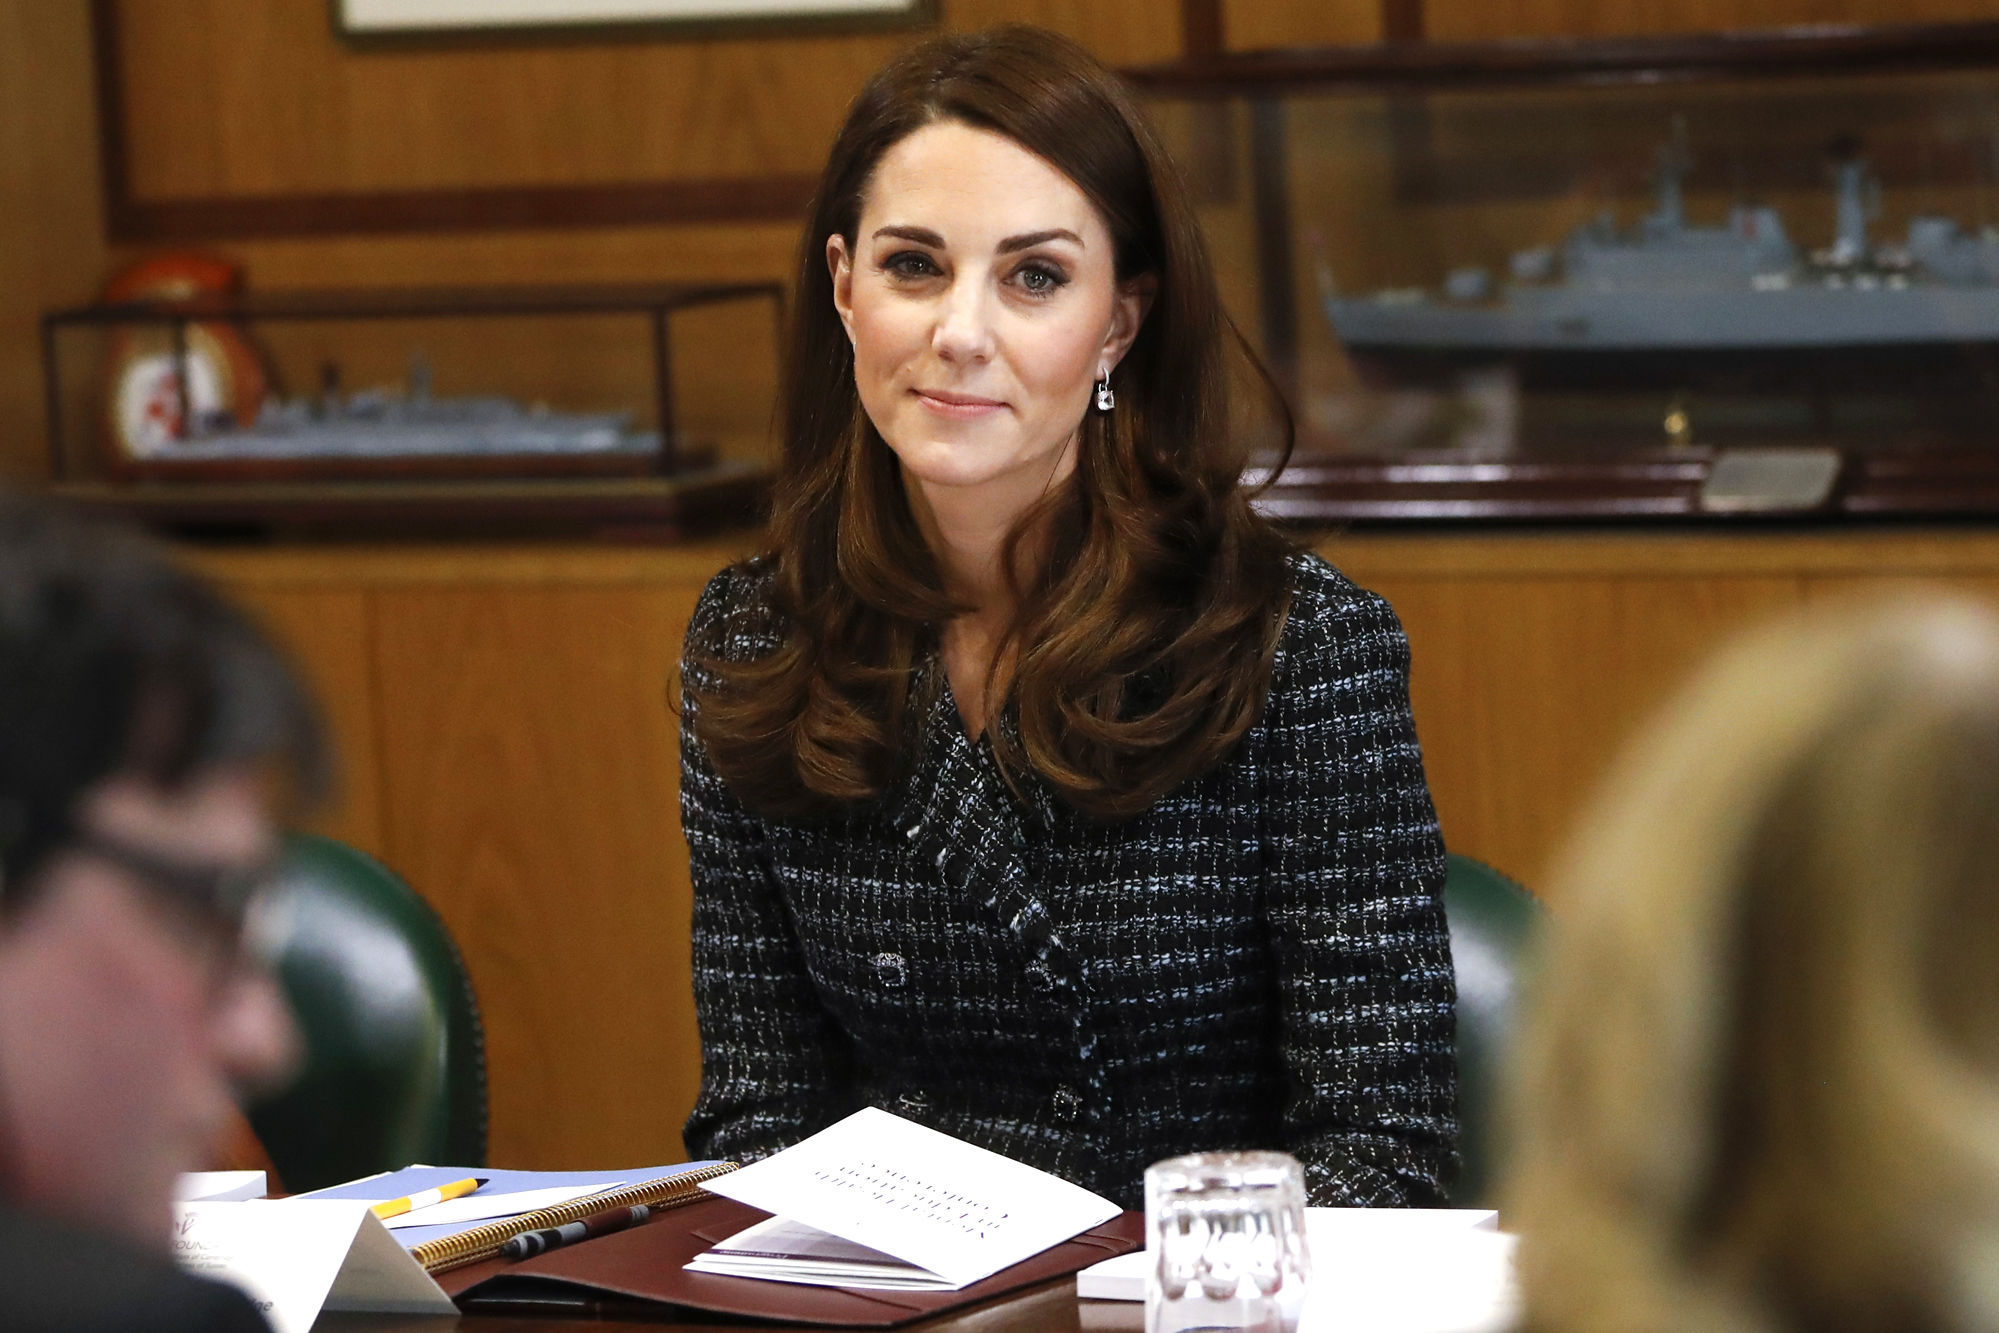 Kate Middleton Quietly Attended a (3-Hour!) Parent Meeting on Mental Health at Her Children's School